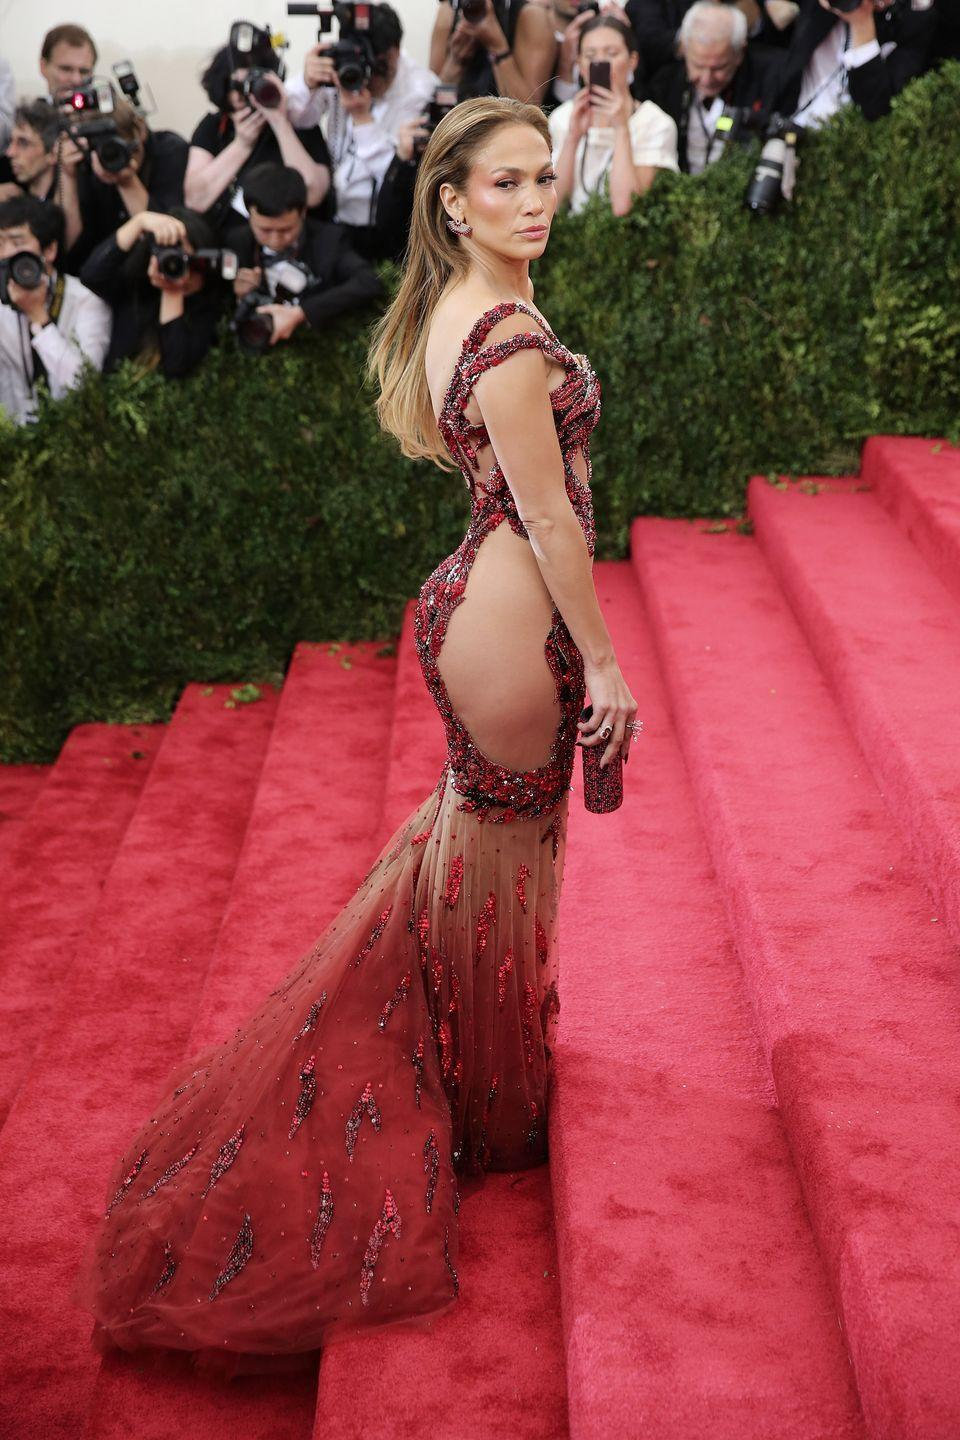 <p><strong>When: </strong>May 2015</p><p><strong>Where:</strong> The Met Gala</p><p><strong>Wearing: </strong>Versace</p>